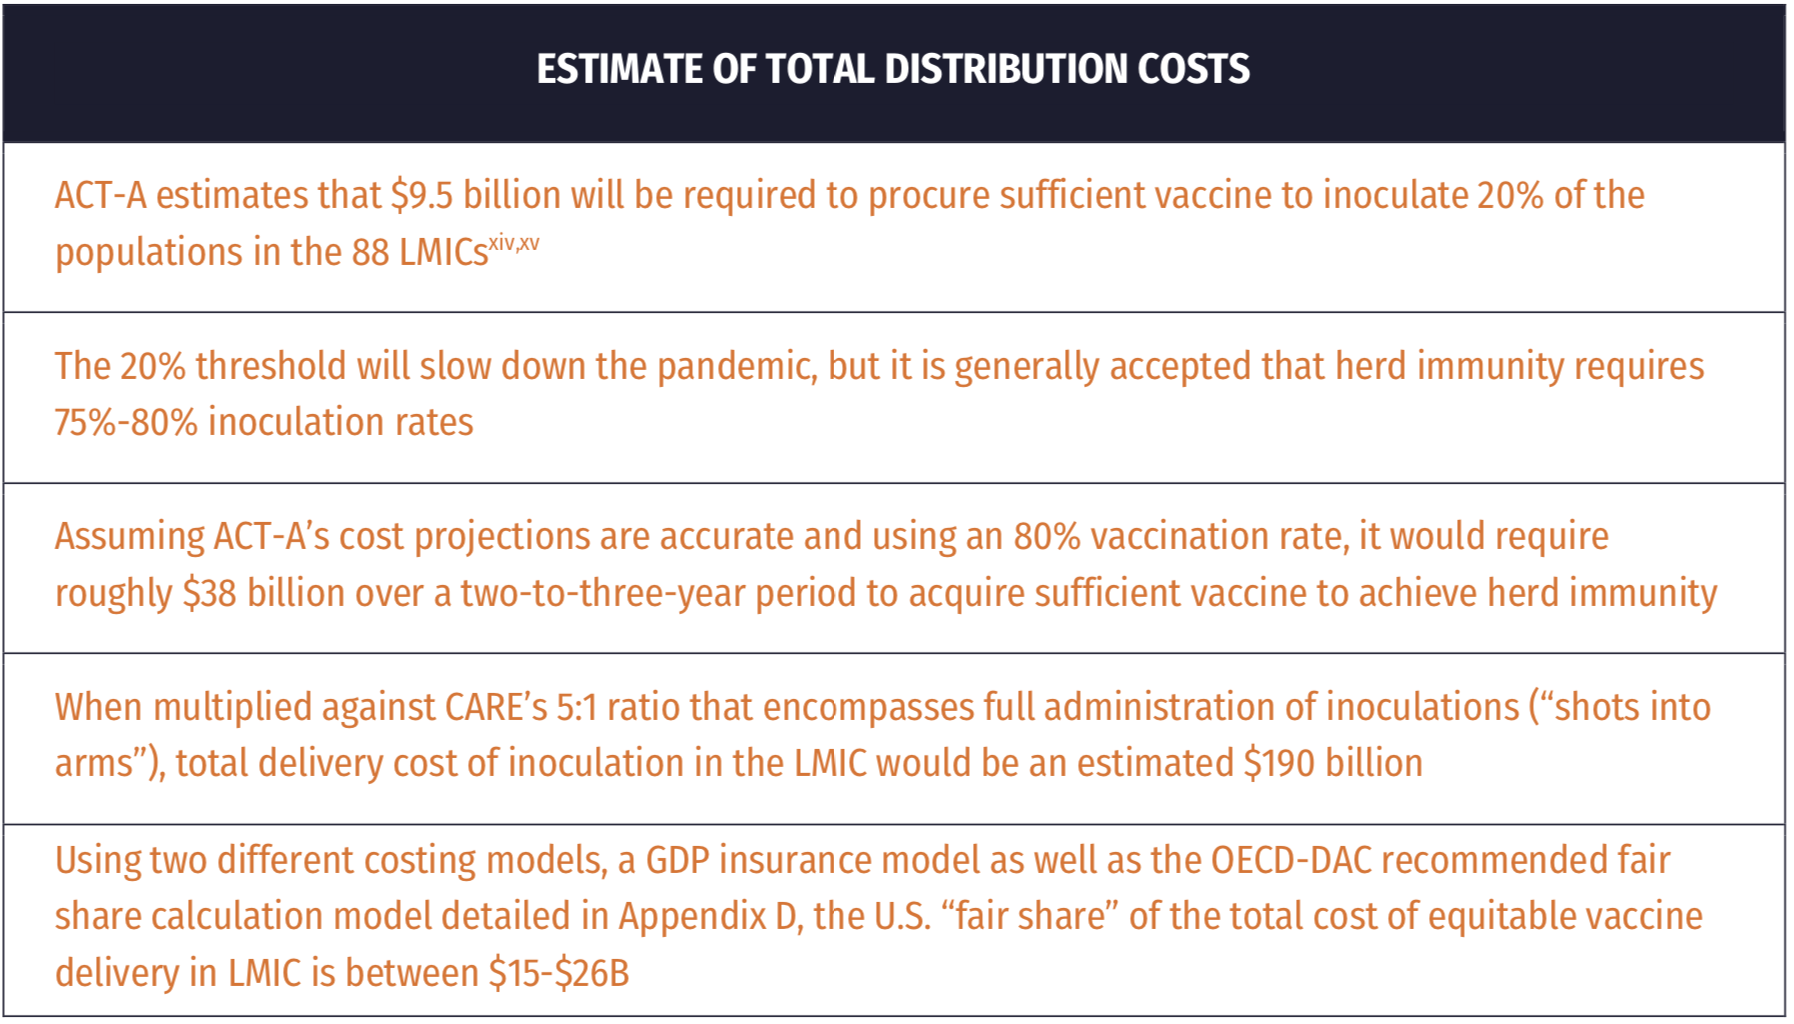 A table showing the estimate of total COVID-19 vaccine distribution costs.